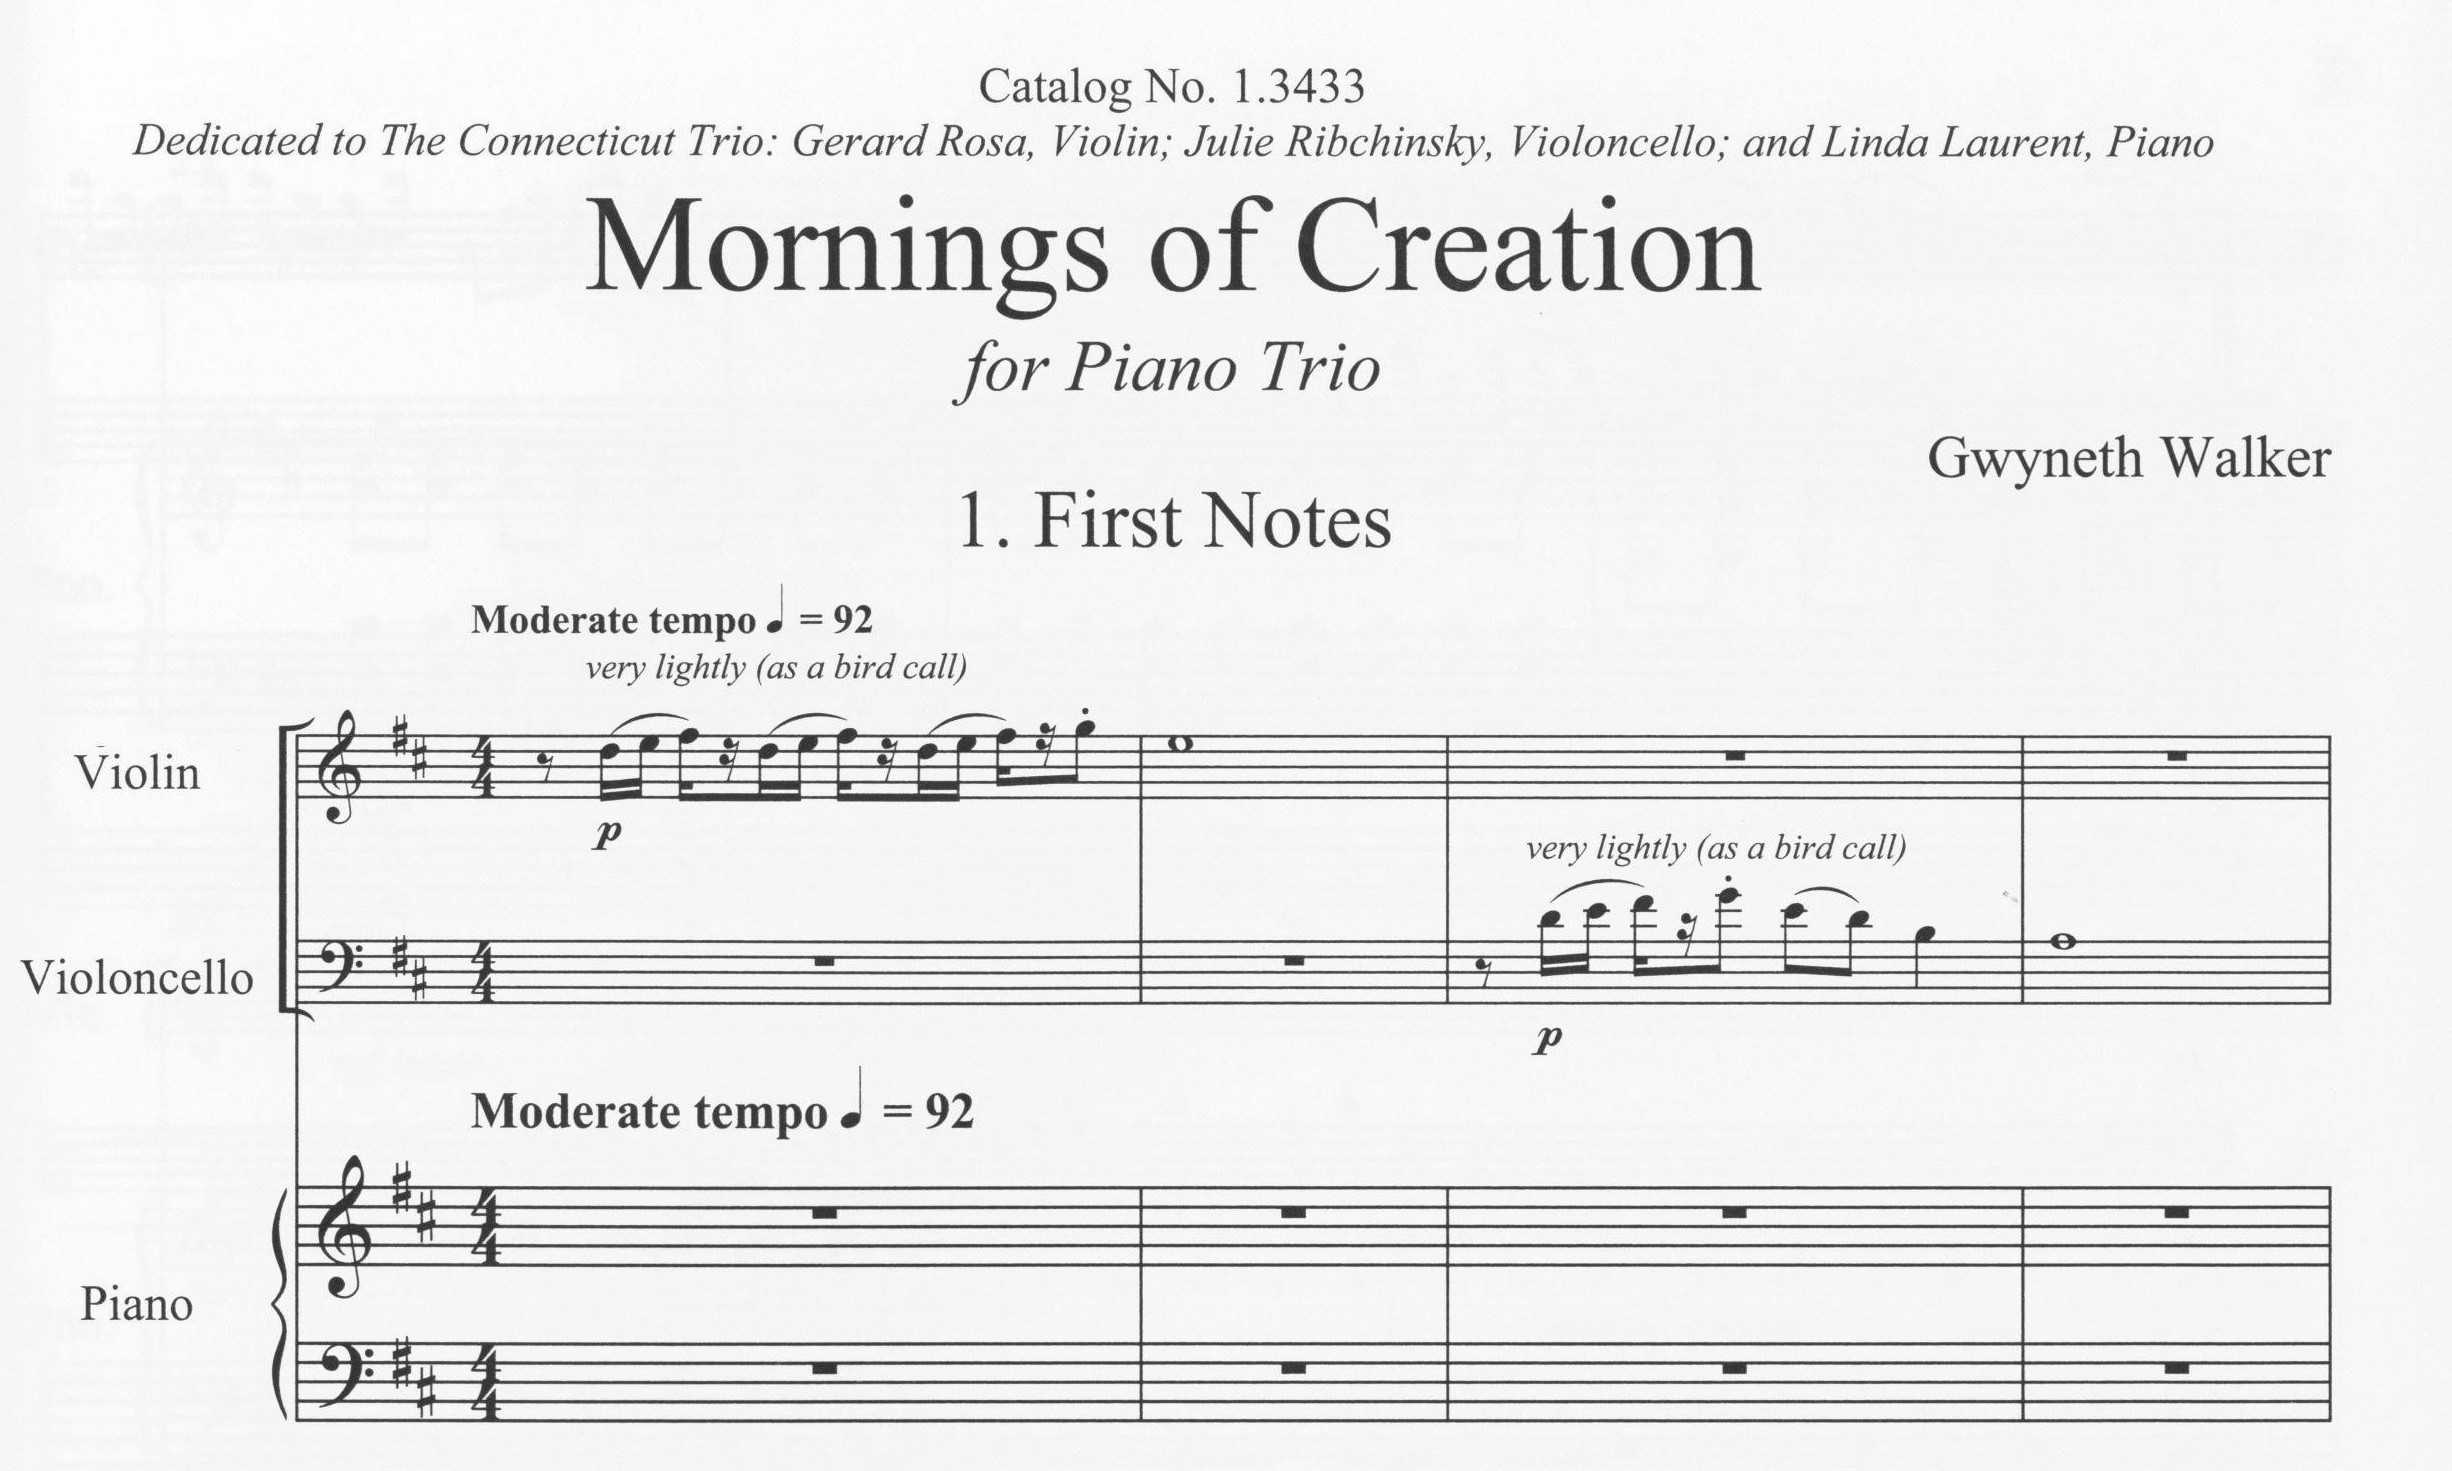 First page of Mornings of Creation